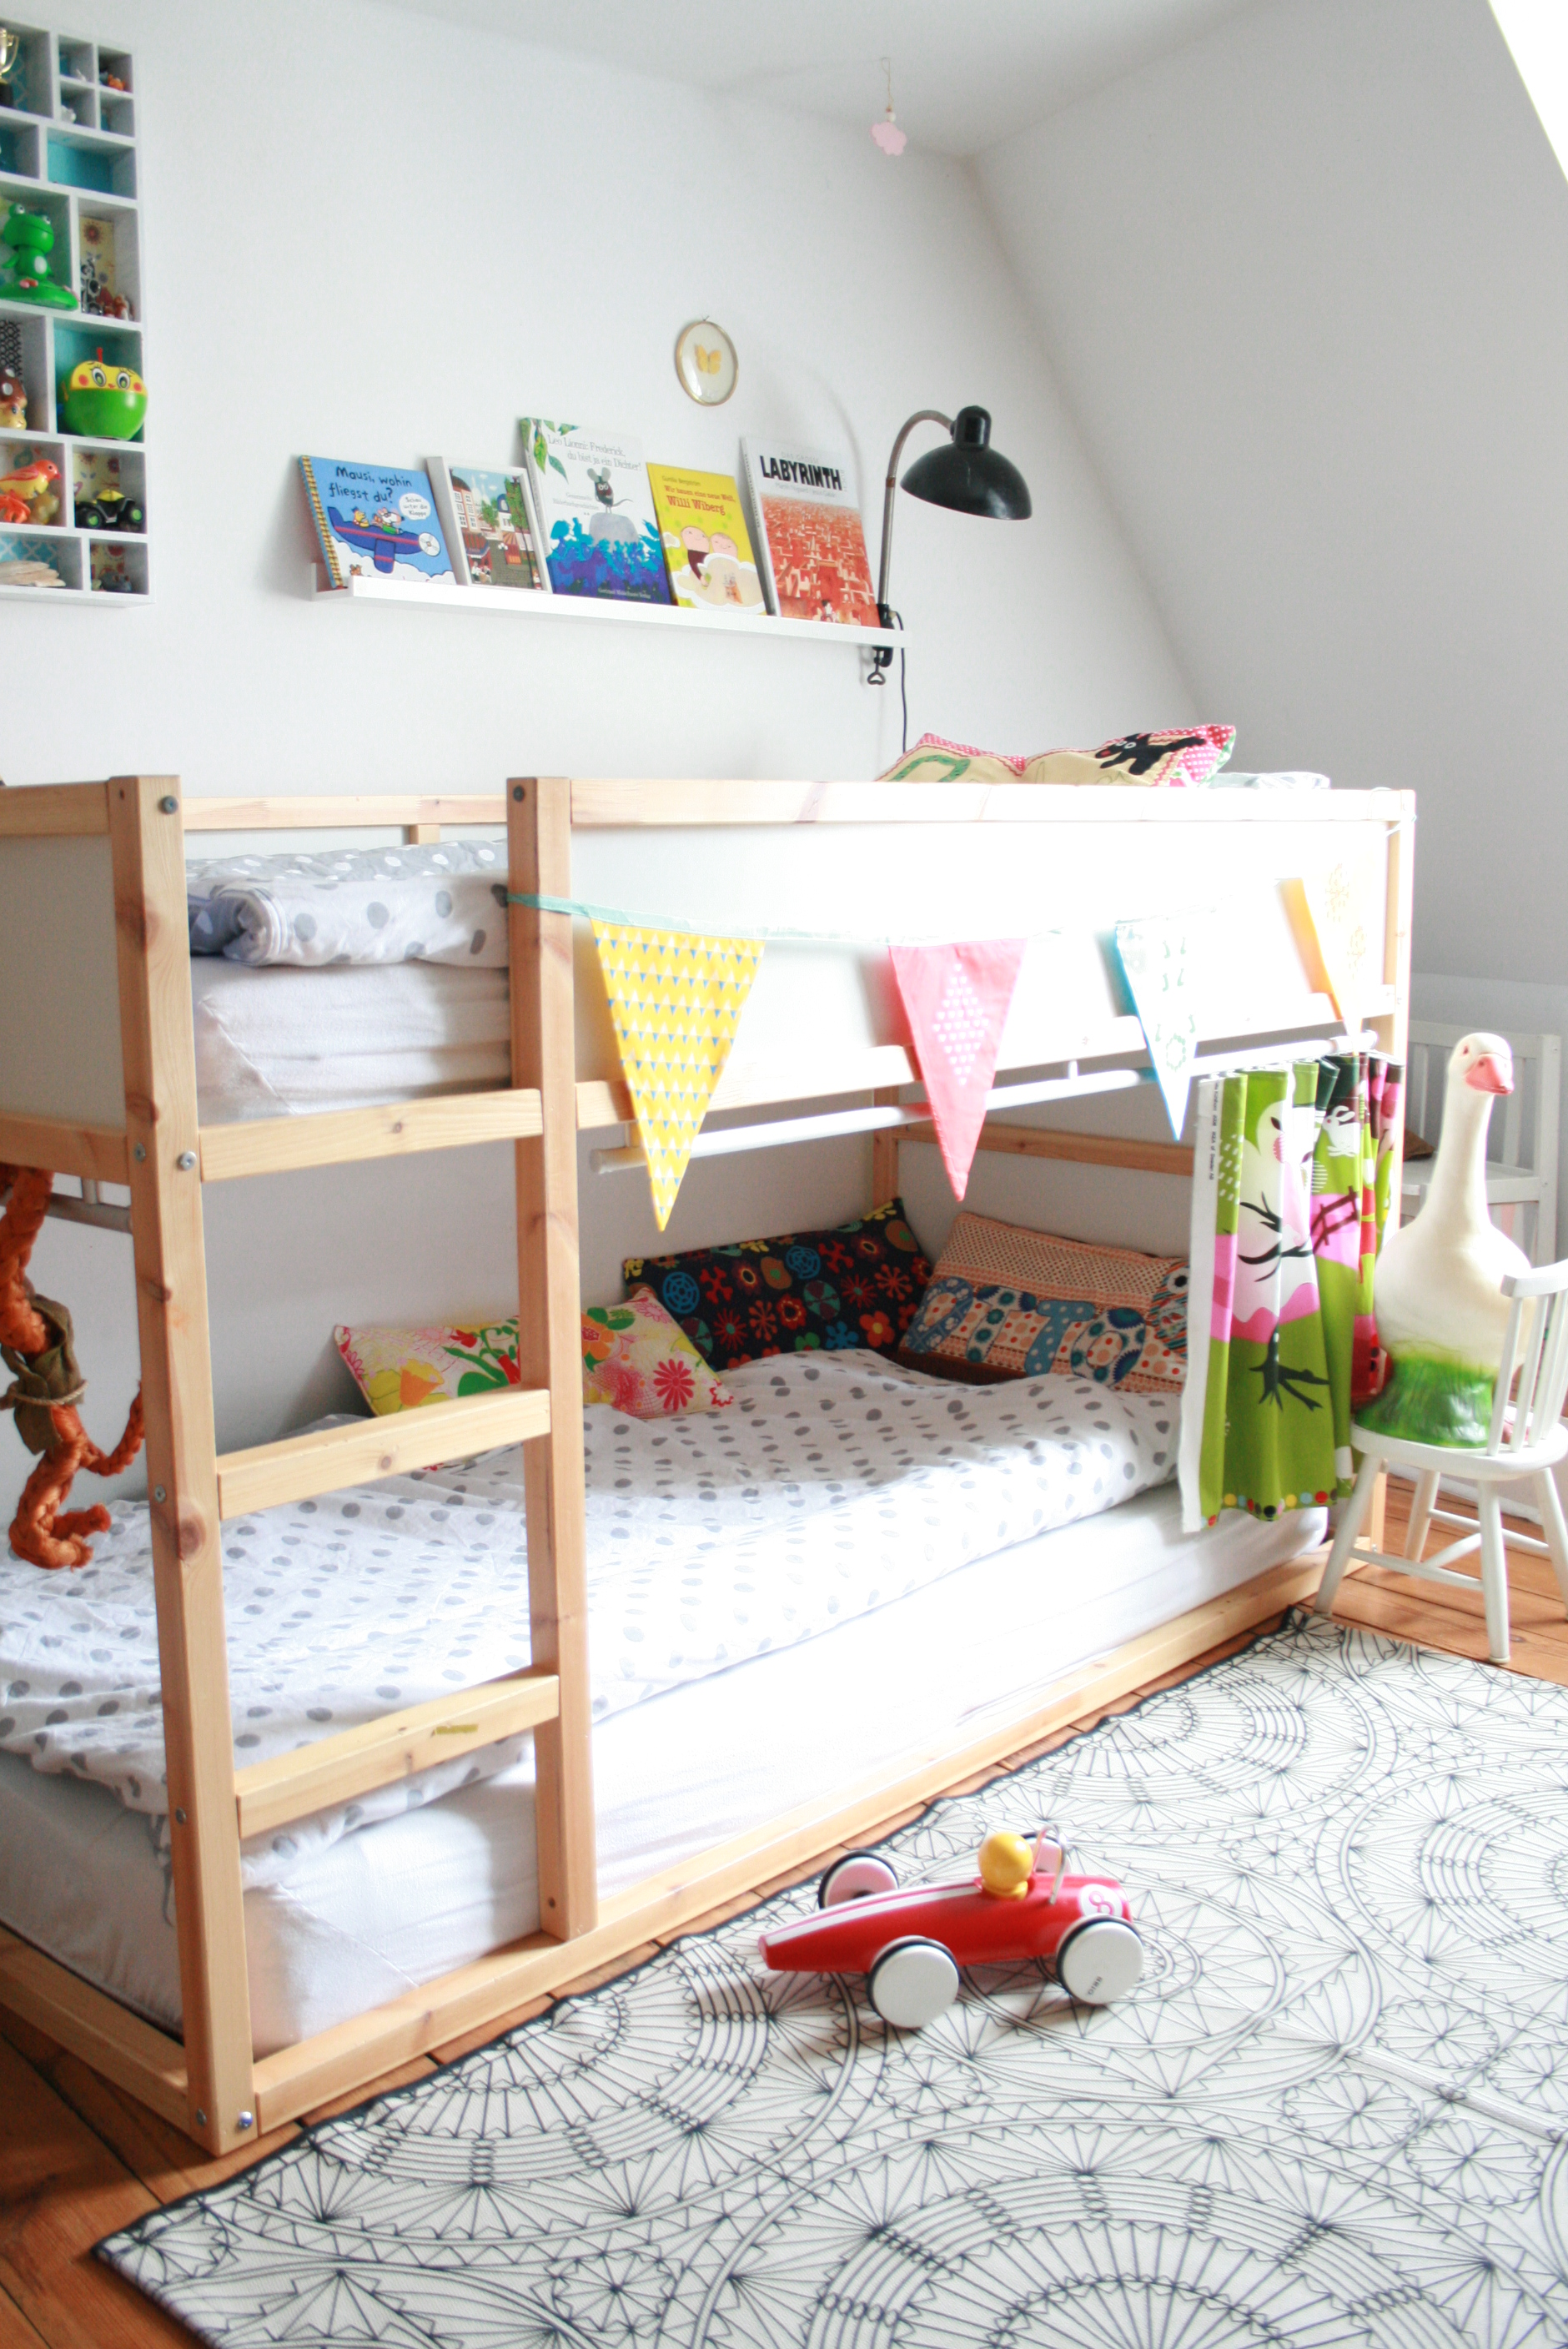 Teppich Vintage Einblick Ins Kinderzimmer! | My Home Is My Horst